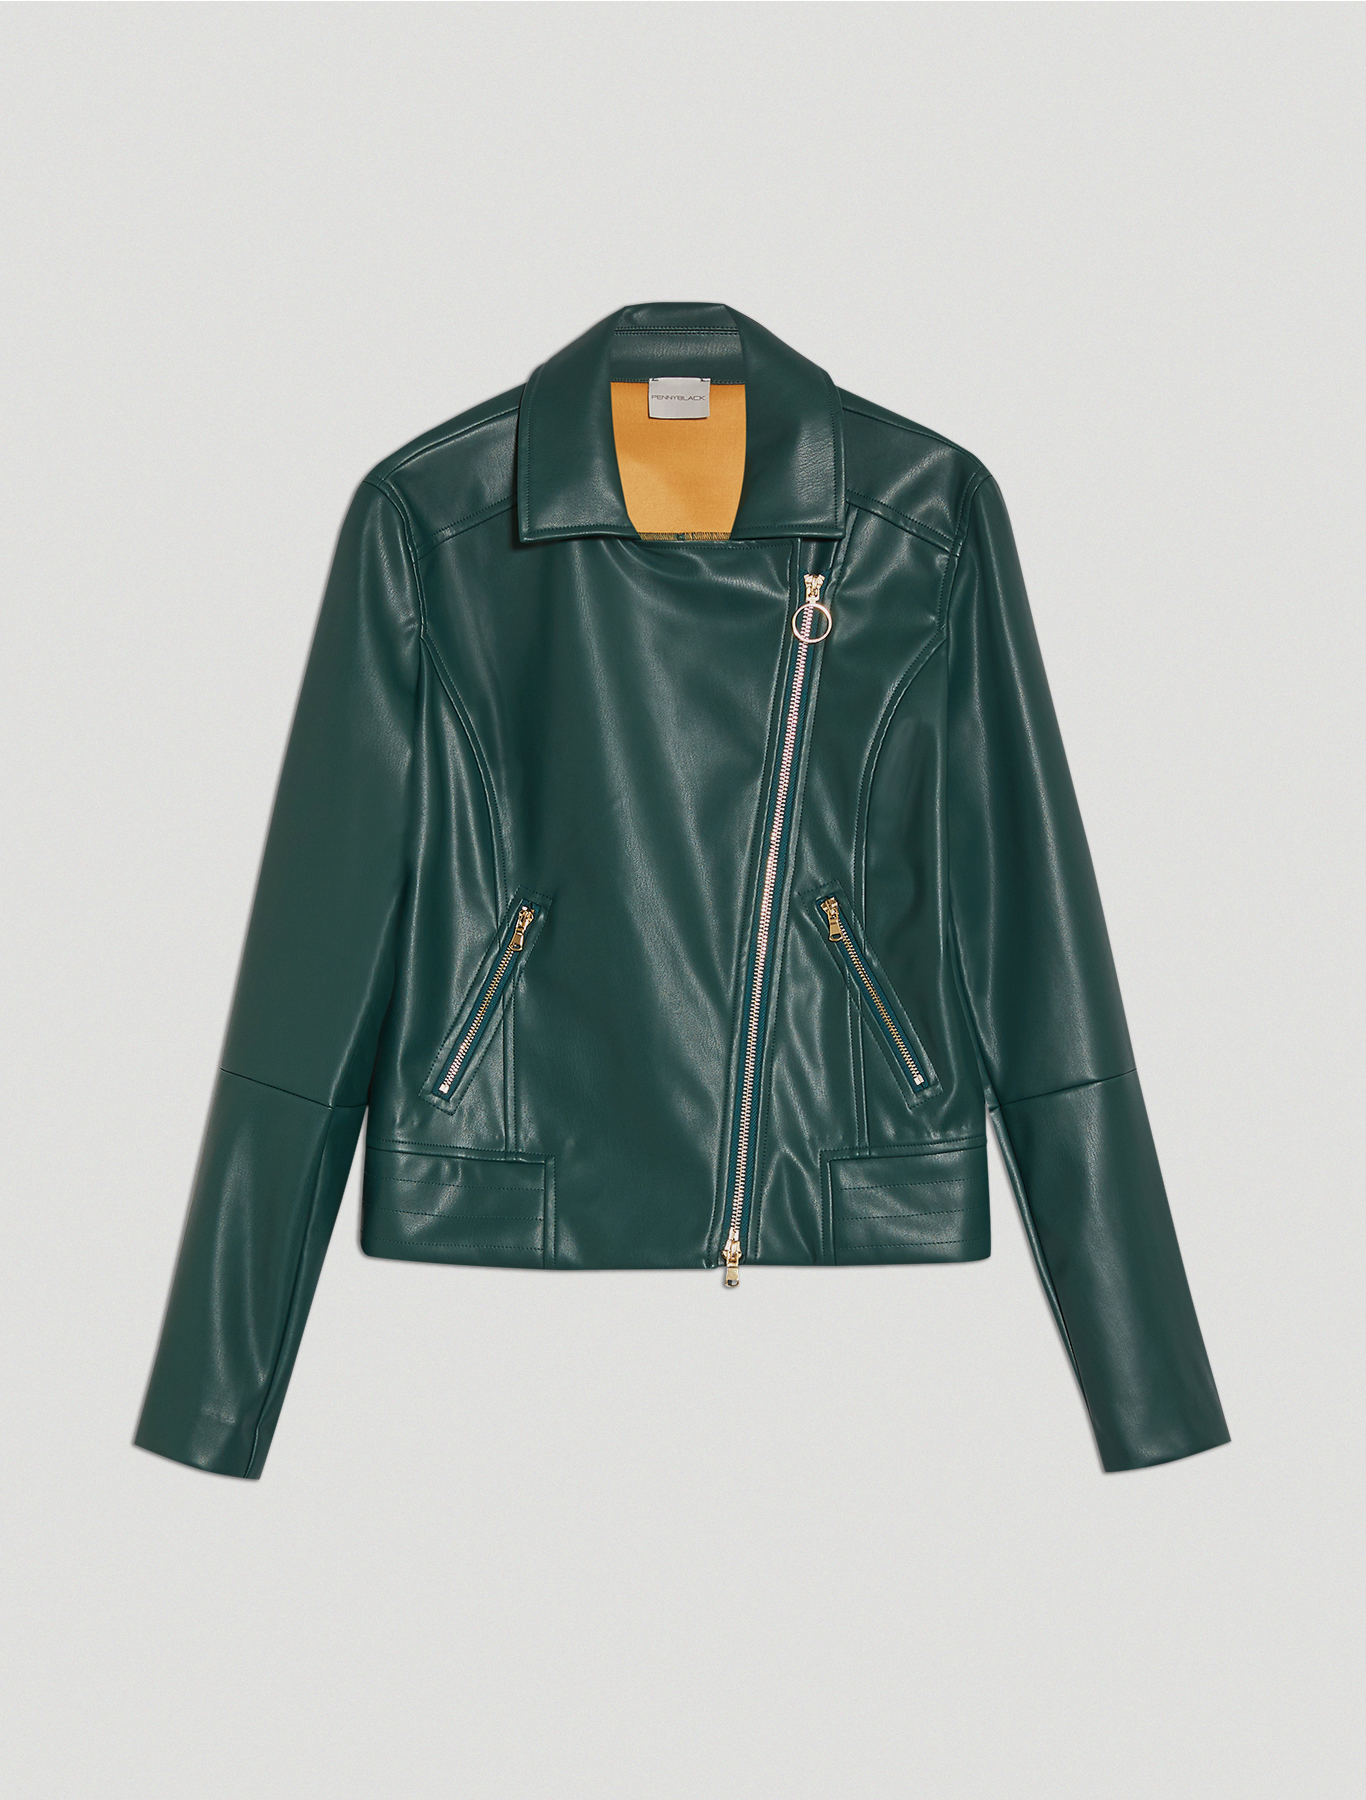 Coated jersey biker jacket - green - pennyblack